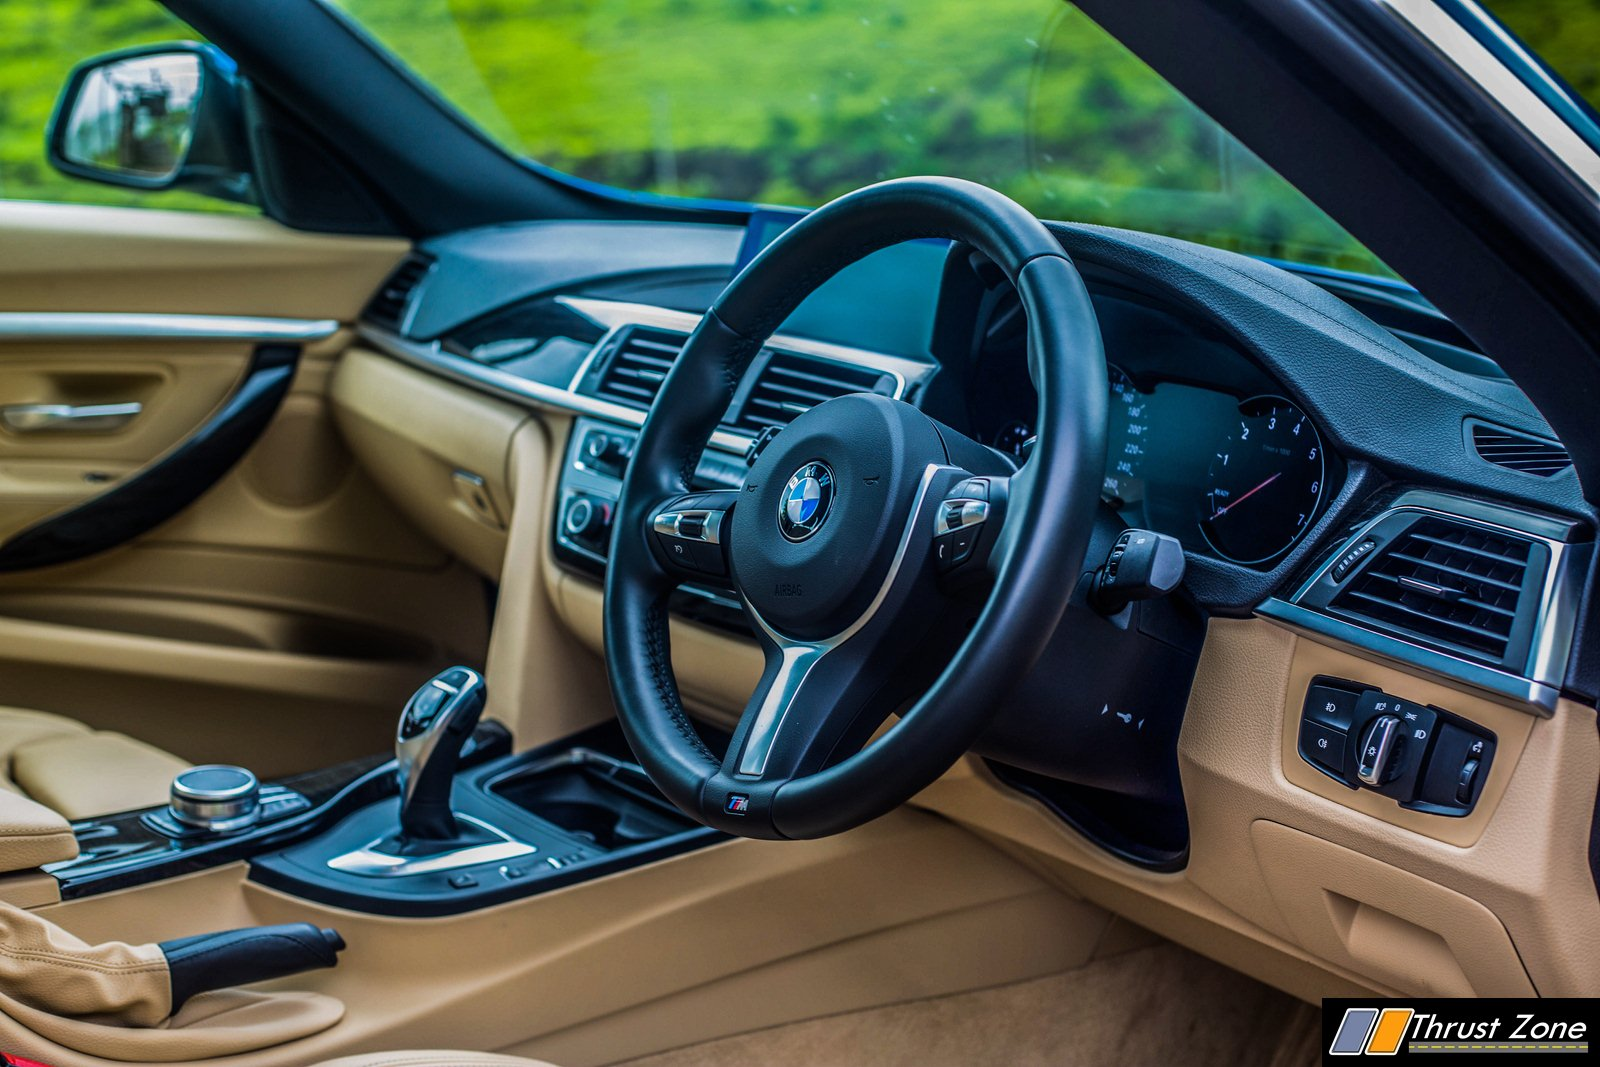 https://www.thrustzone.com/wp-content/uploads/2018/08/BMW-330i-GT-India-Review-10.jpg